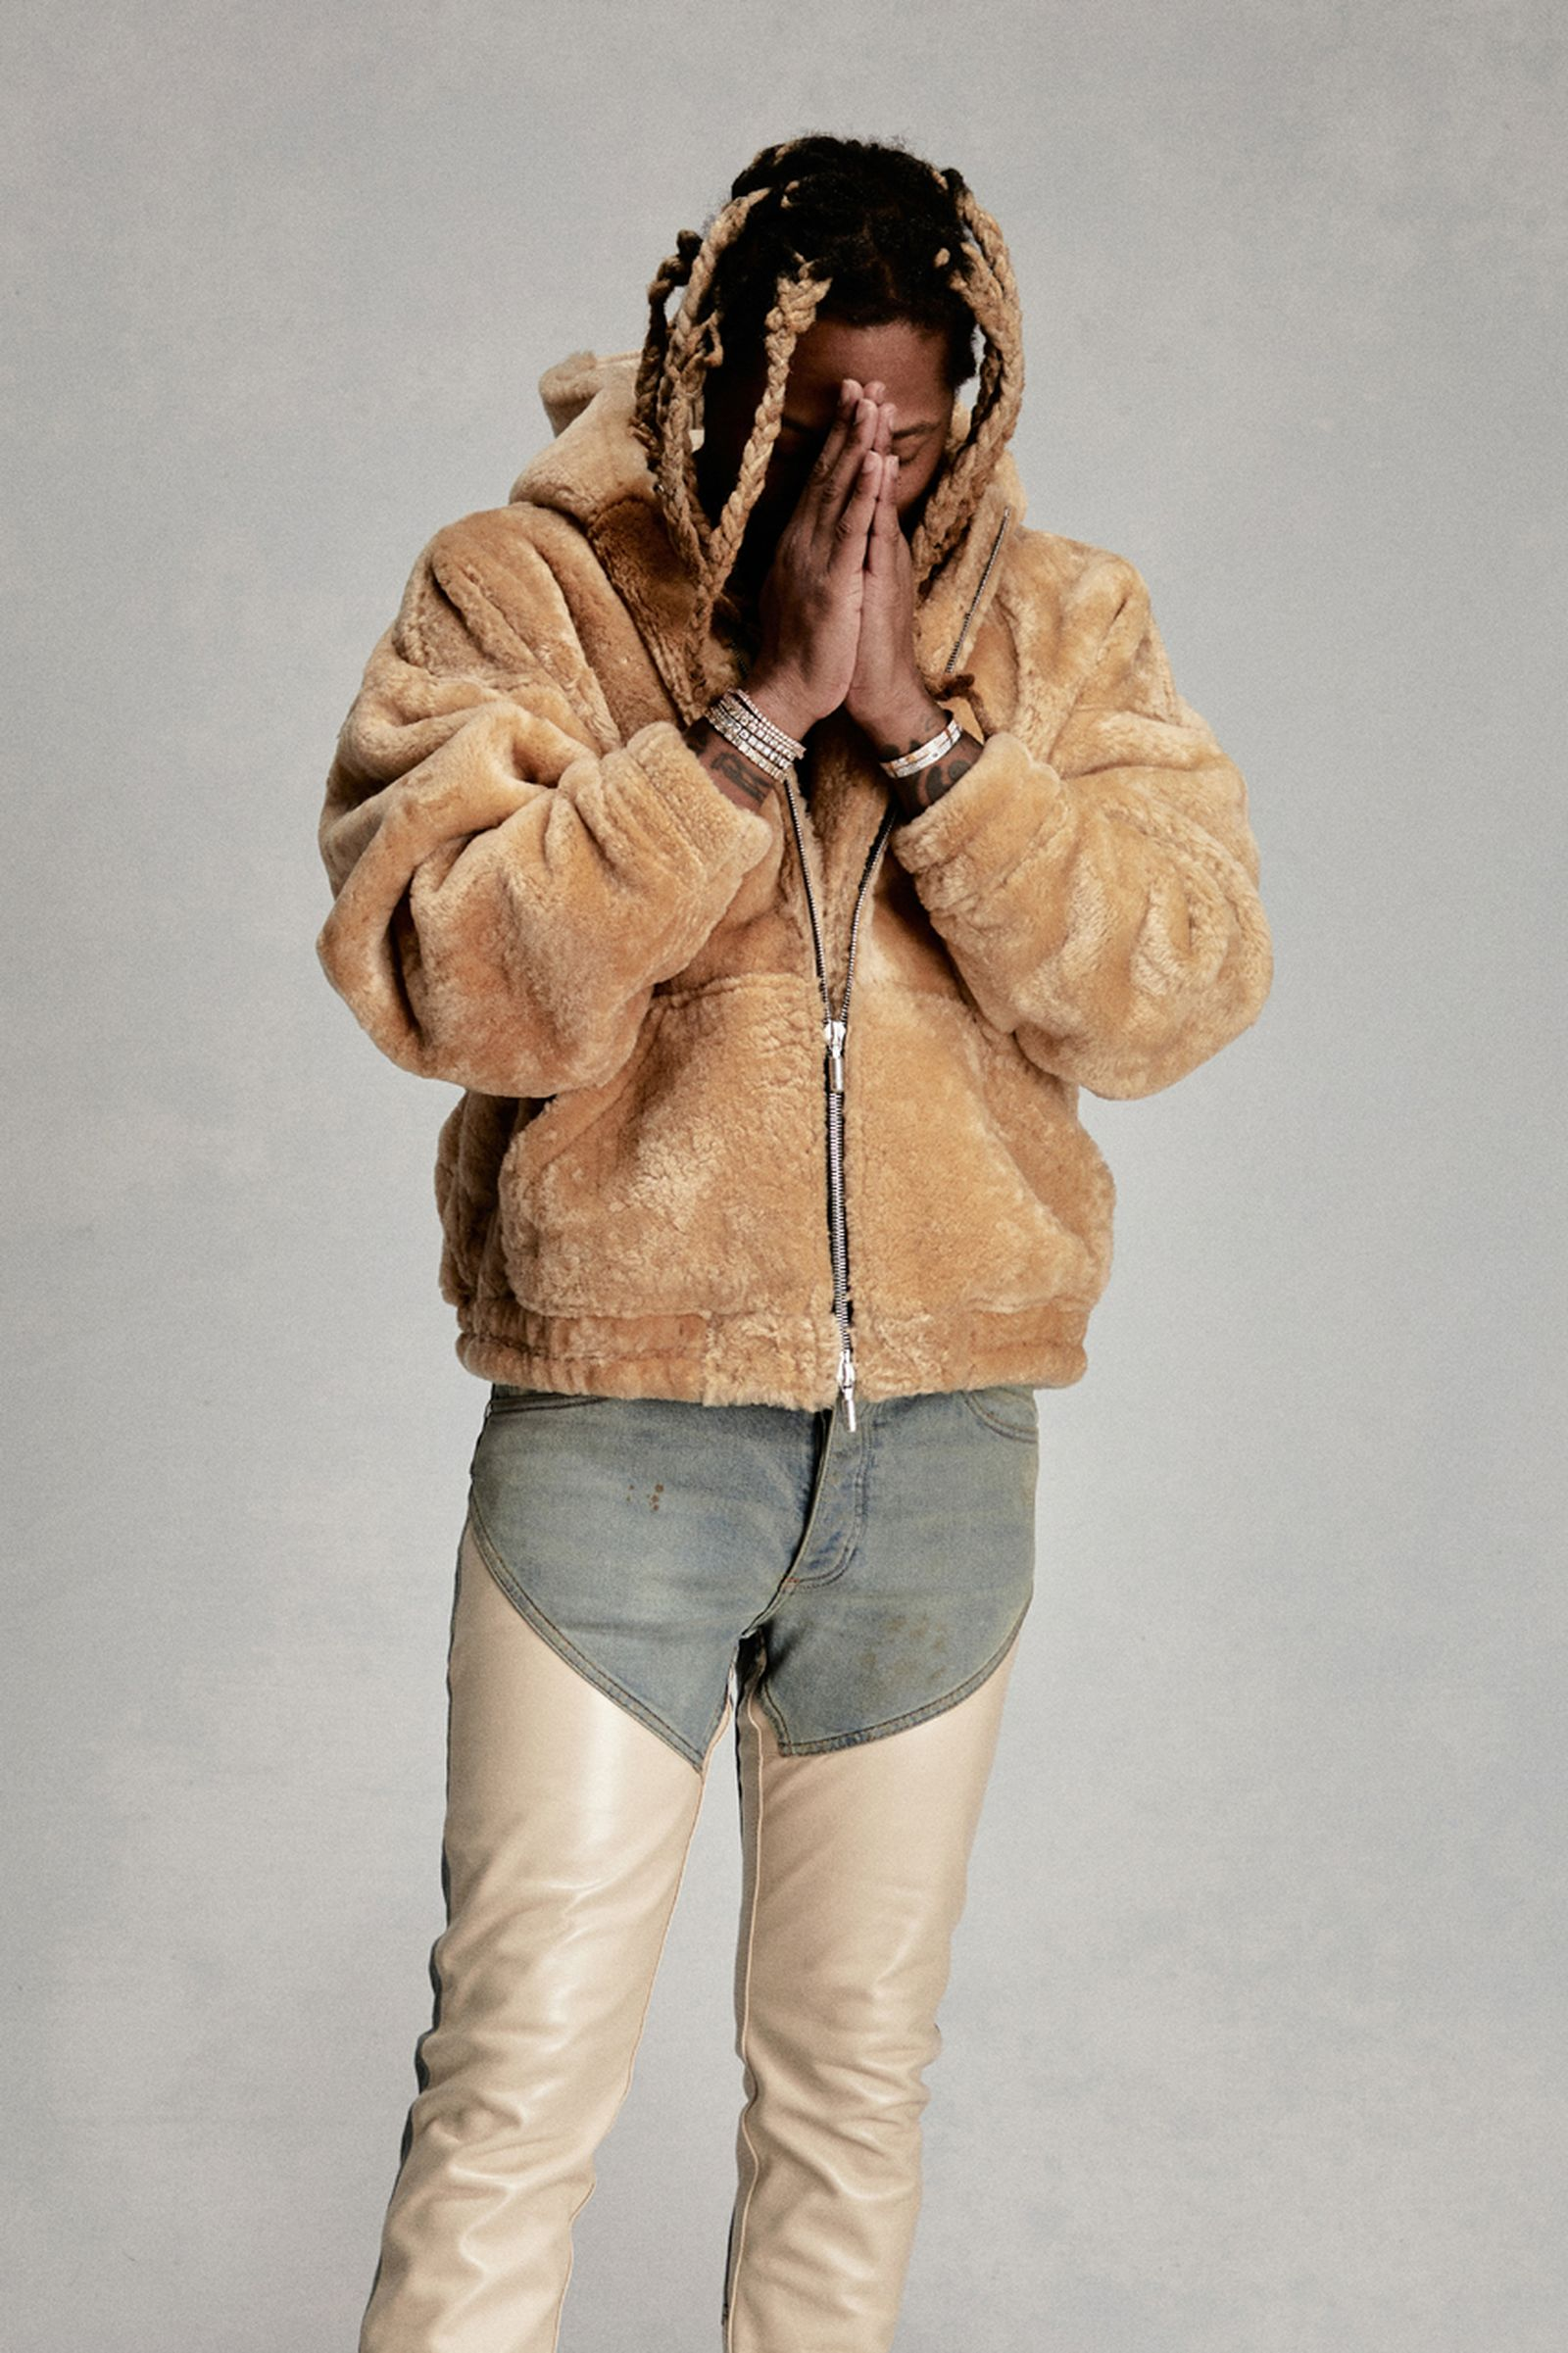 future-fronts-new-rhude-campaign-12